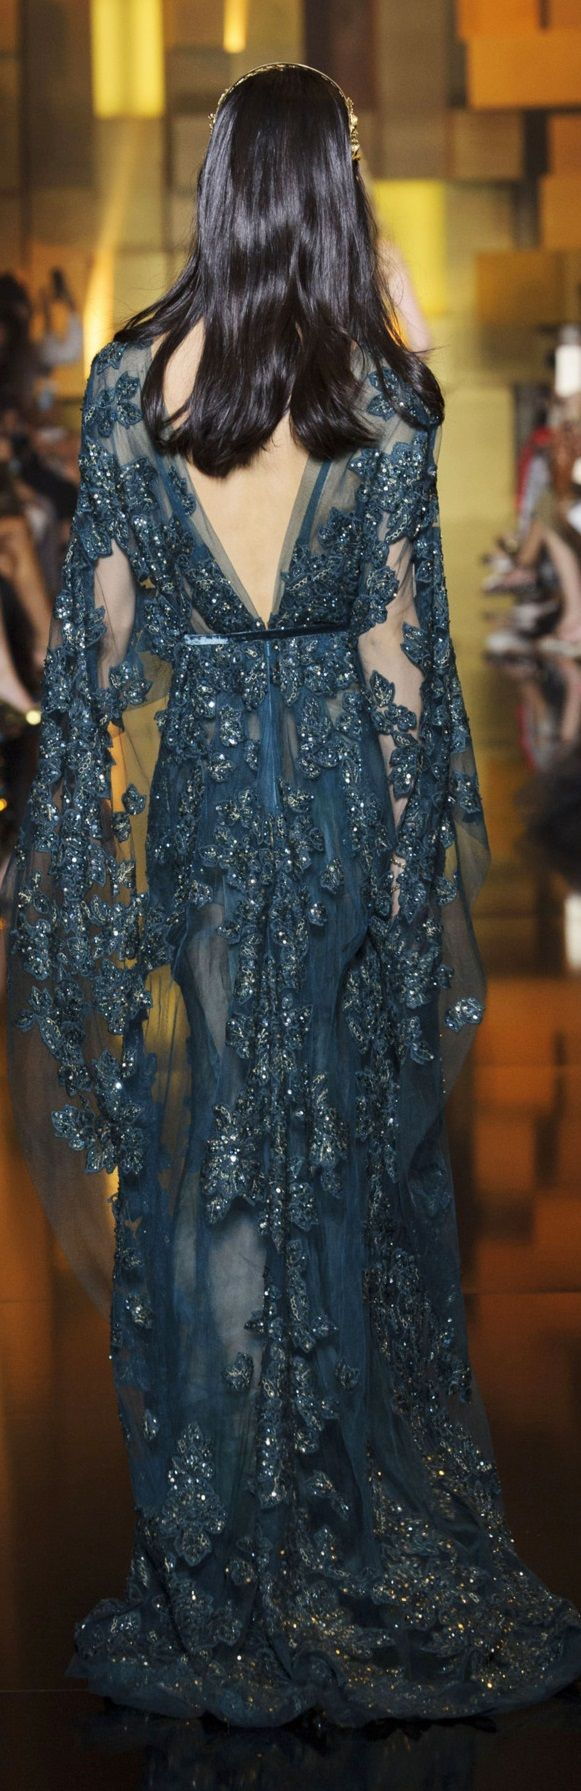 Elie Saab fall 2015 couture. Exclusive boho. For more followwww.pinterest.com/ninayayand stay positively #inspired